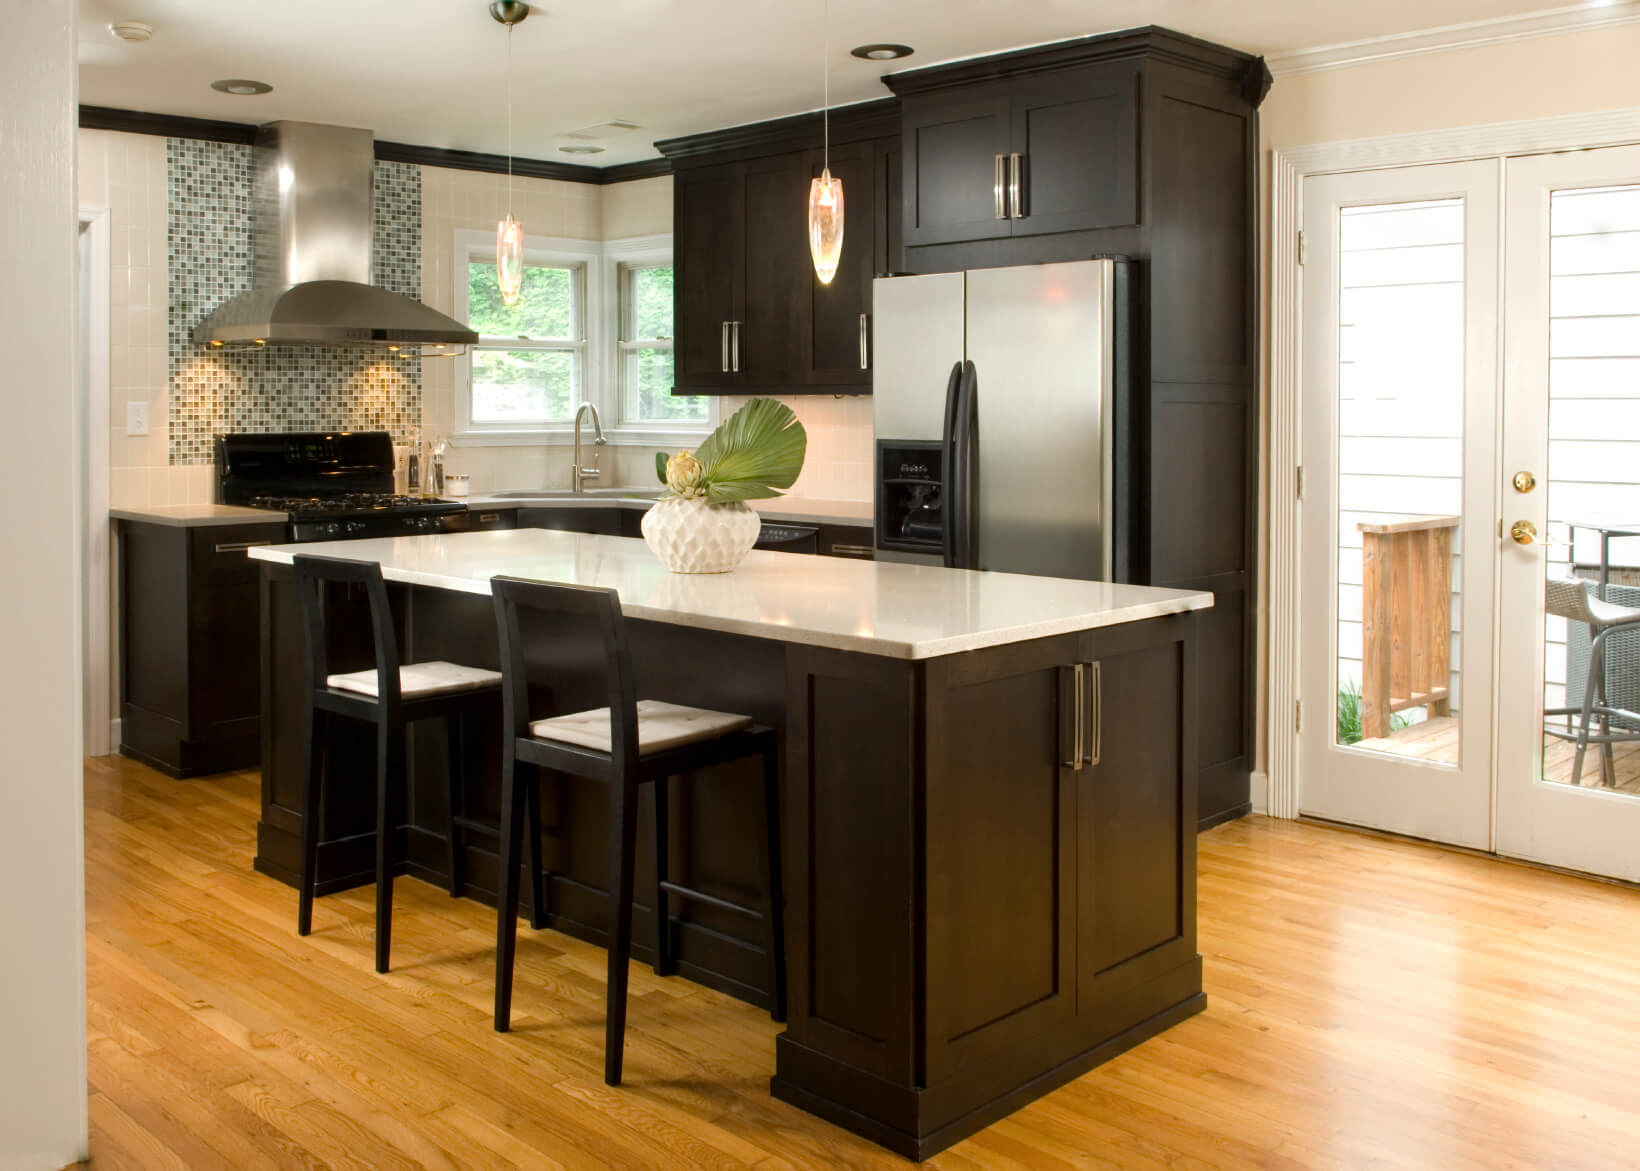 white hardware elegant design beautiful kitchen ideas home cabinets of cabinet black